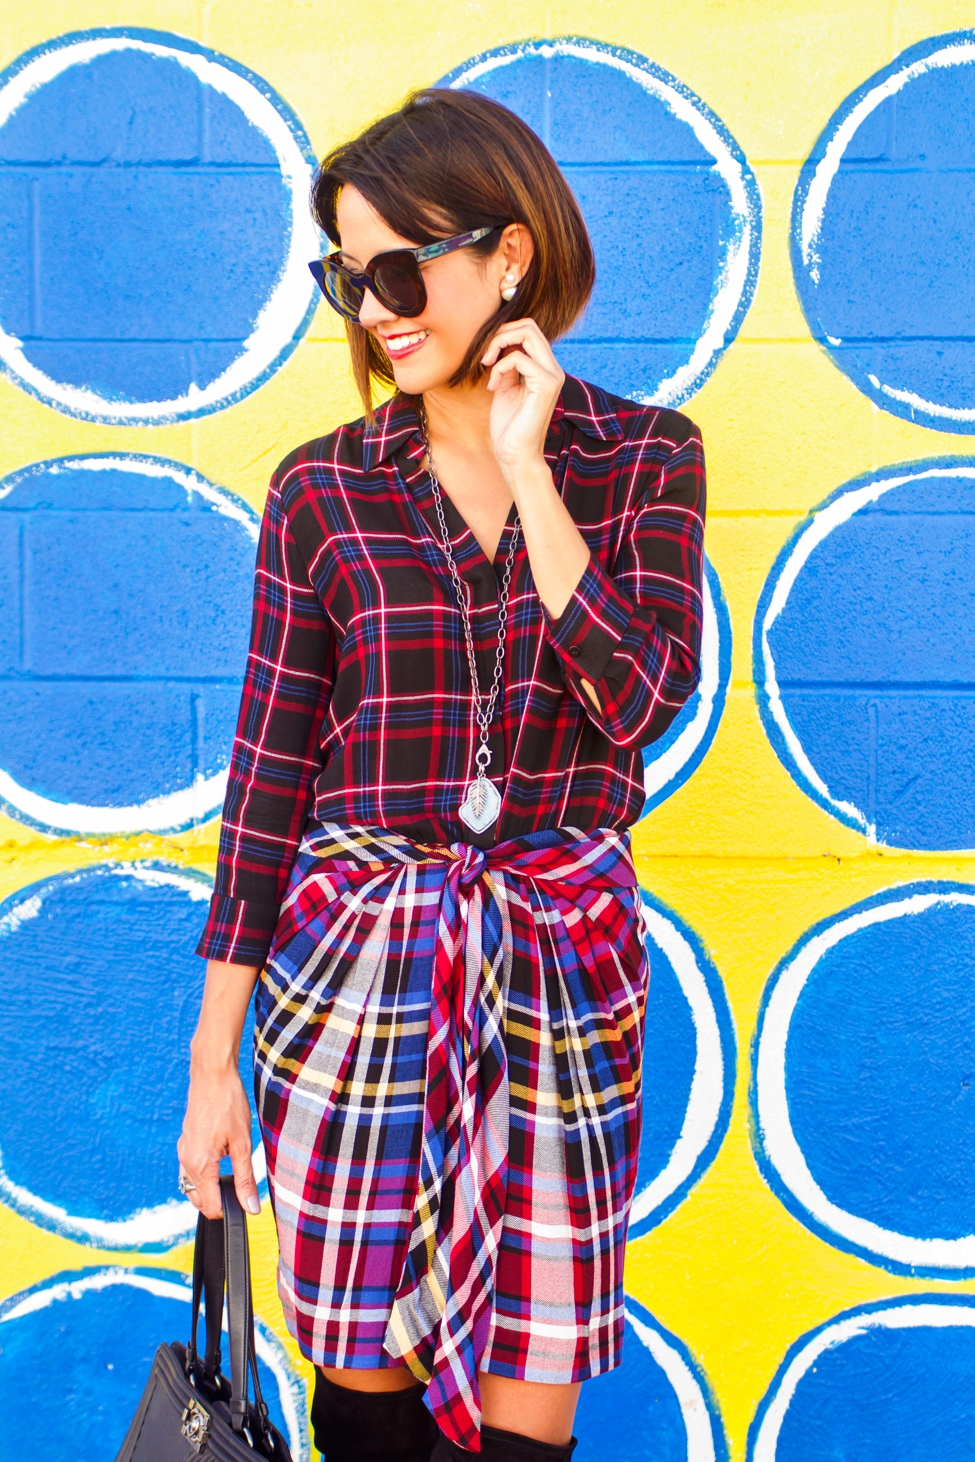 Don't Miss These 5 Tips for Wearing Plaid